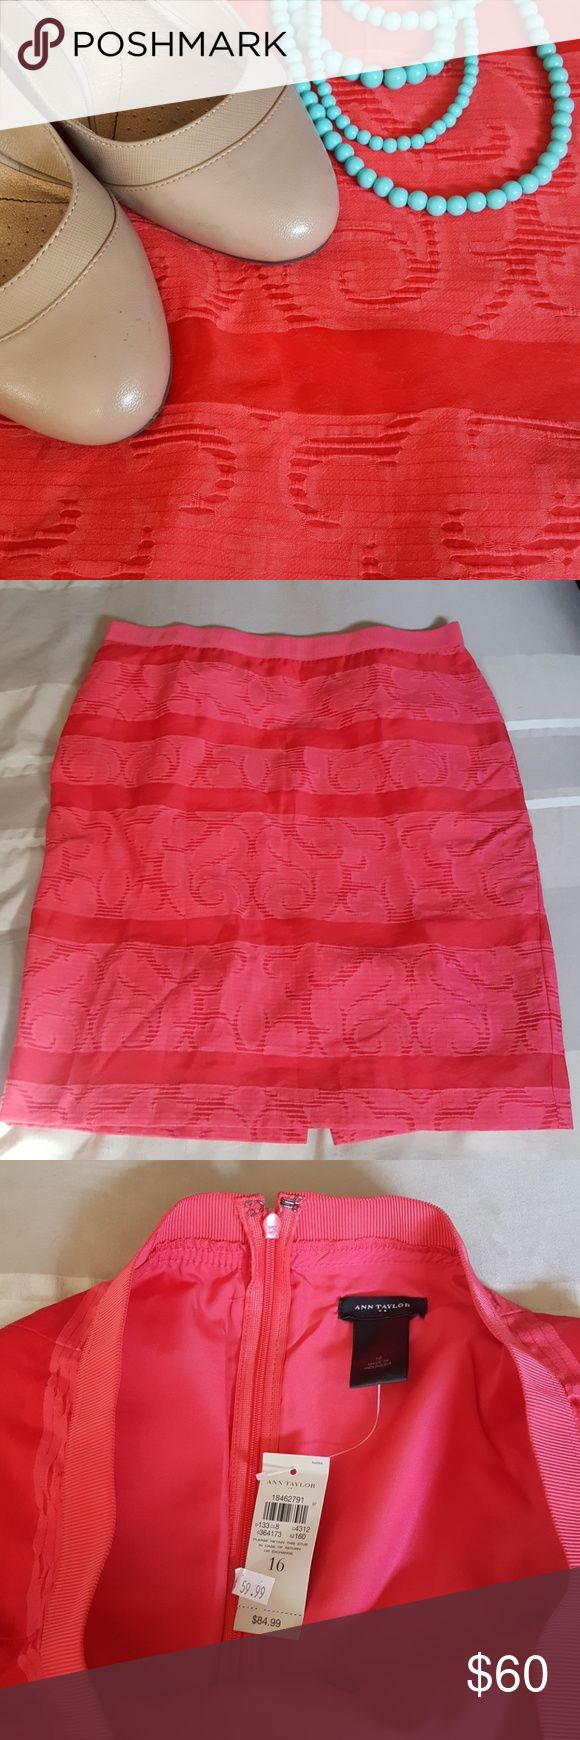 Ann Taylor Coral pencil skirt Very flattering coral pattern Ann Taylor pencil skirt. Never worn. Was a goal skirt but I just never achieved the goal. Waist is stretchy. Lined and delicate. Ann Taylor Skirts Pencil